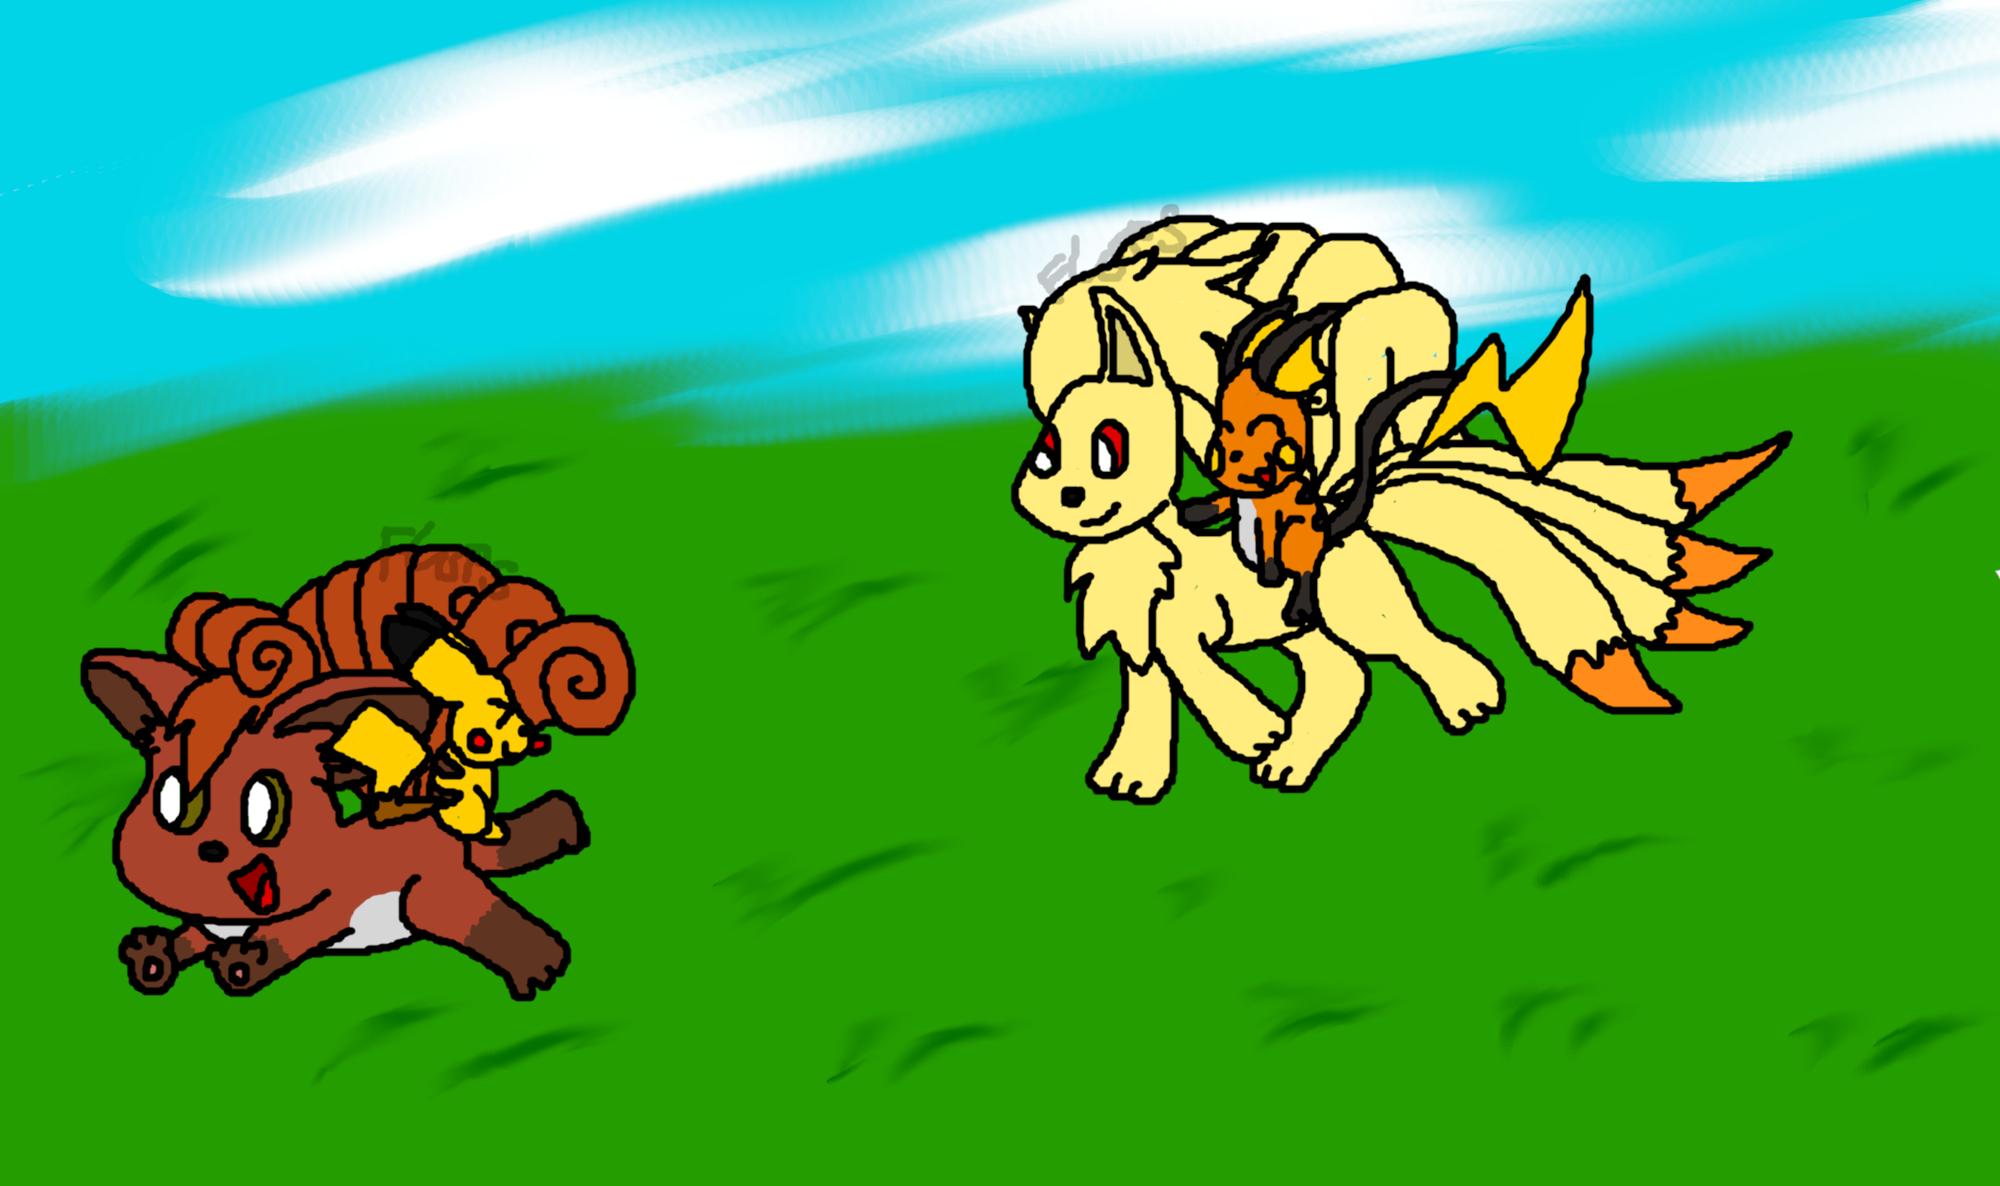 Ninetails and Raichu chase Vulpix and Pikachu by Kuby